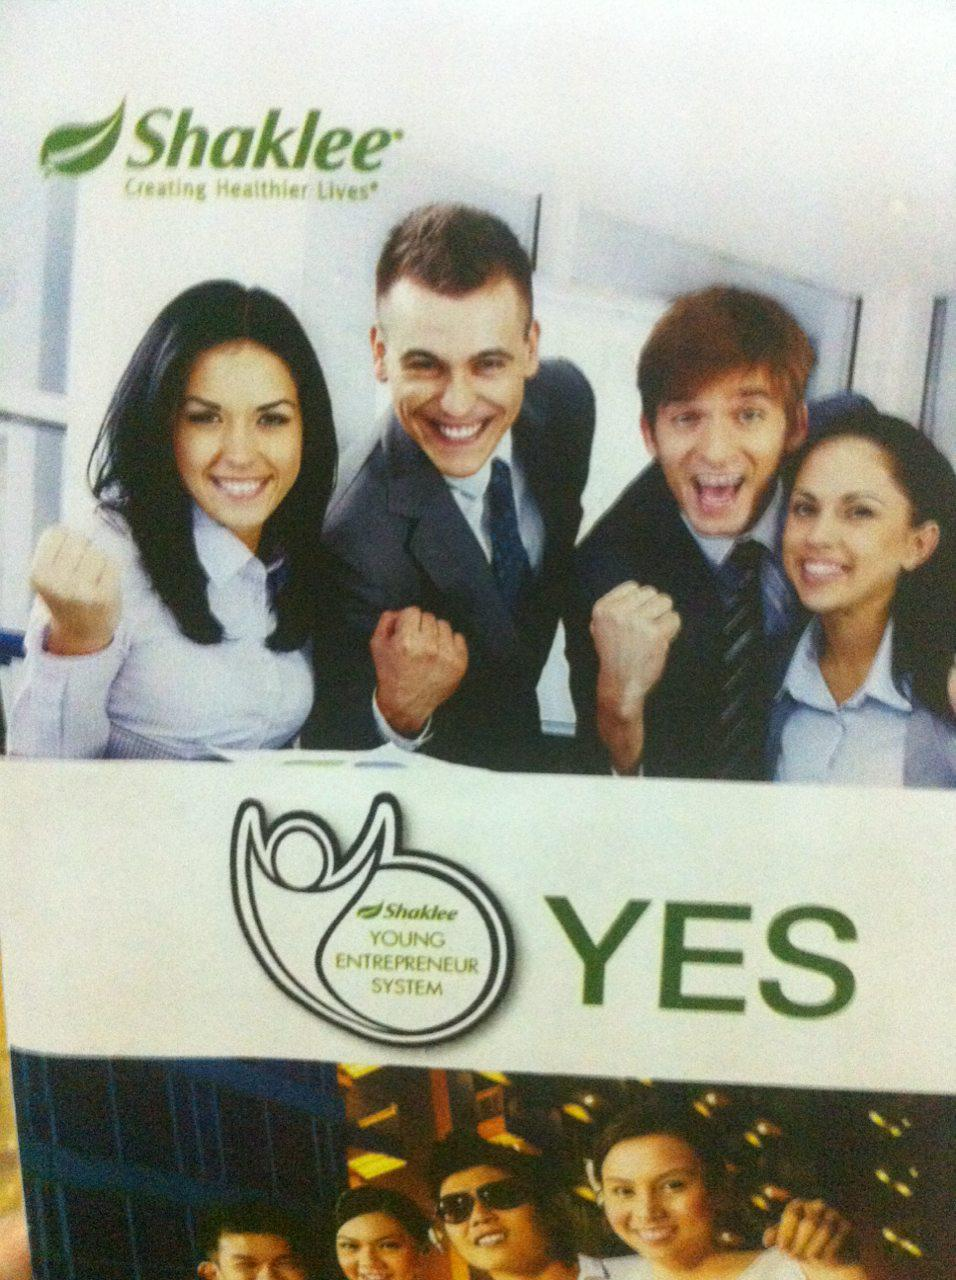 Shaklee YES Young Entrepreneur System Program